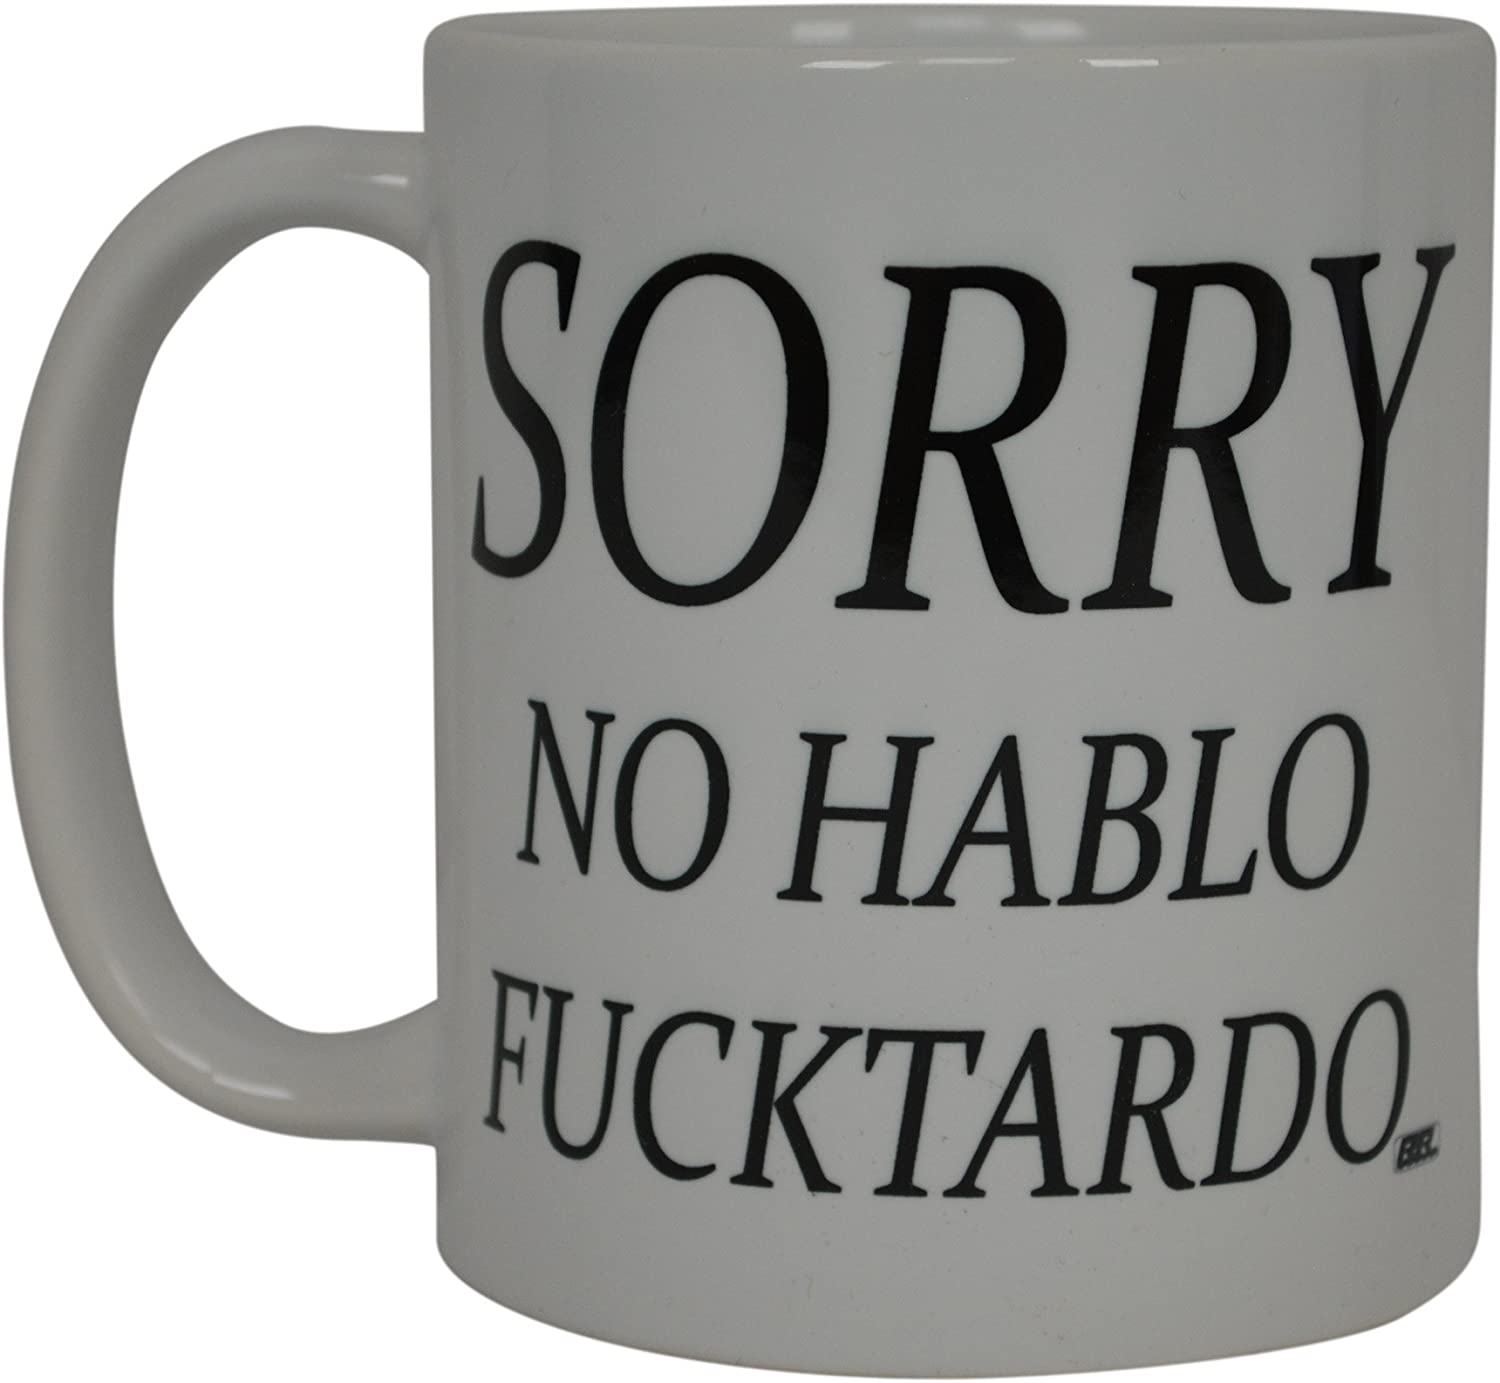 Best Funny Coffee Mug Sorry No Hablo Fucktardo Sarcastic Novelty Cup Joke Great Gag Gift Idea For Men Women Office Work Adult Humor Employee Boss Coworkers